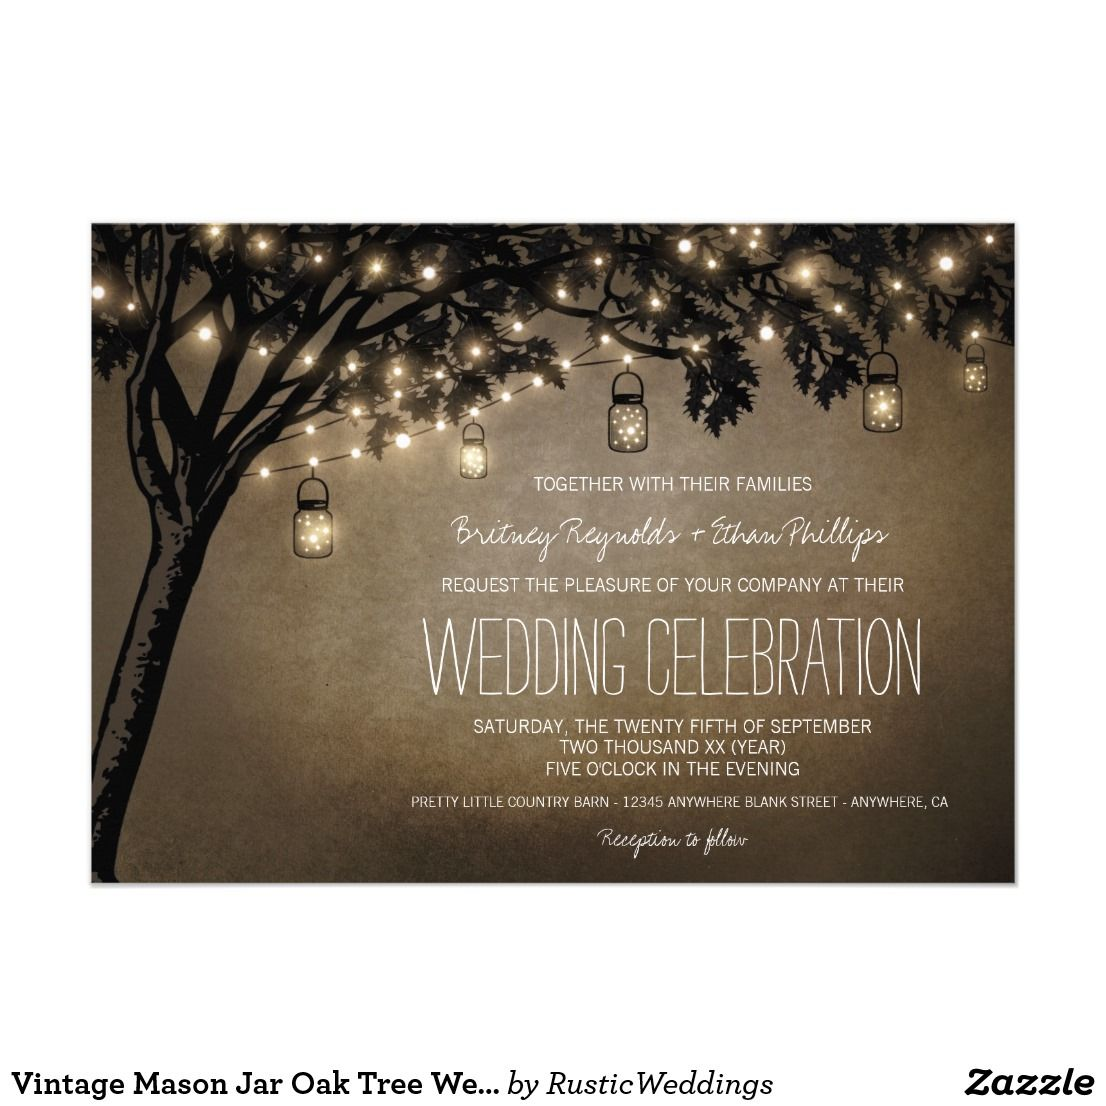 ideas for country wedding invitations%0A Vintage Mason Jar Oak Tree Wedding Invitations Vintage Mason Jar Oak Tree Wedding  Invitations  features